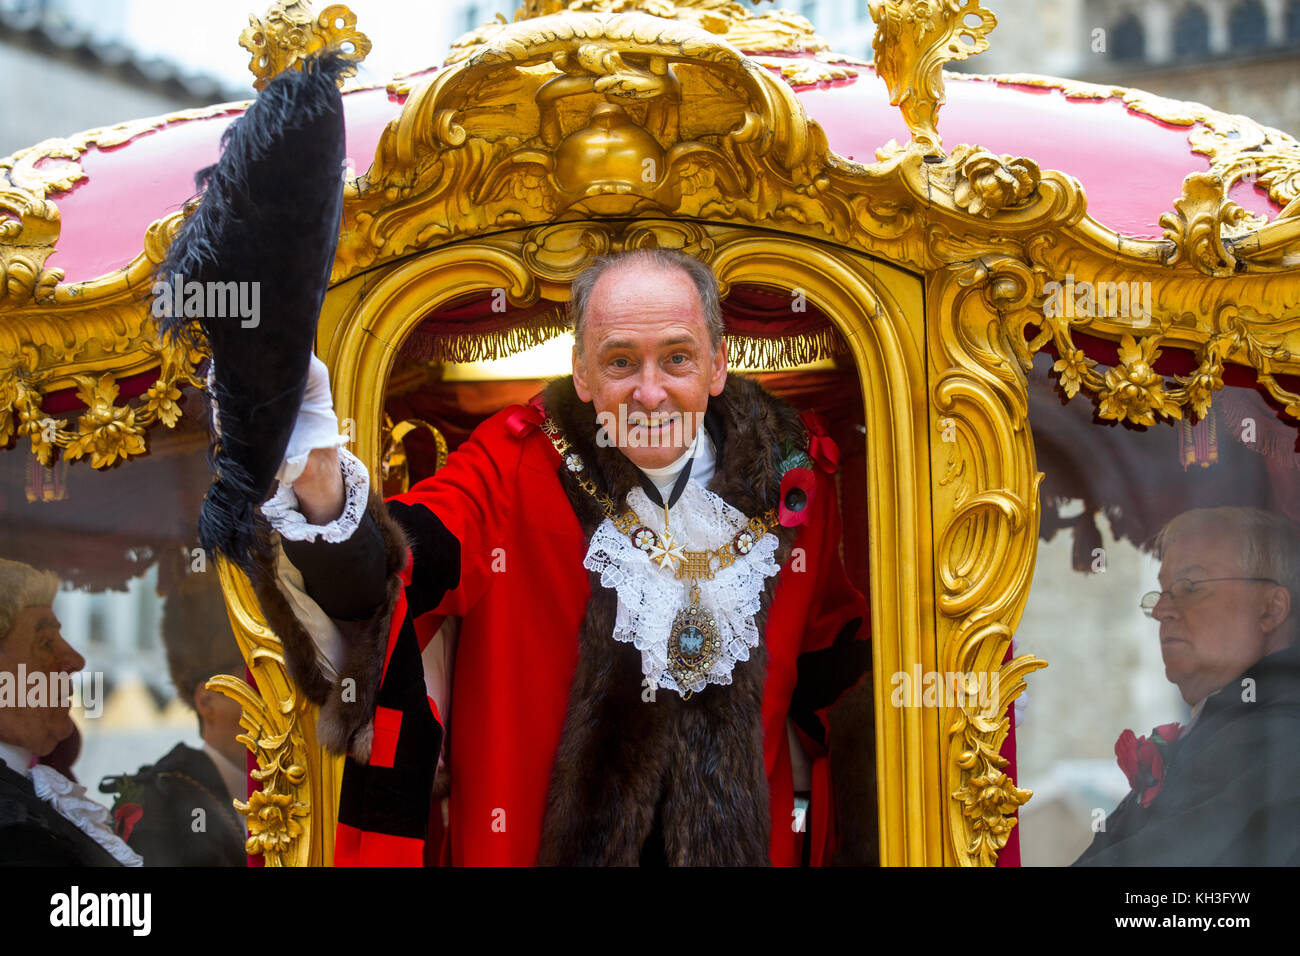 The New Lord Mayor of London, Charles Bowman, waves his tricorn hat from the Lord Mayor's gold carriage outside - Stock Image